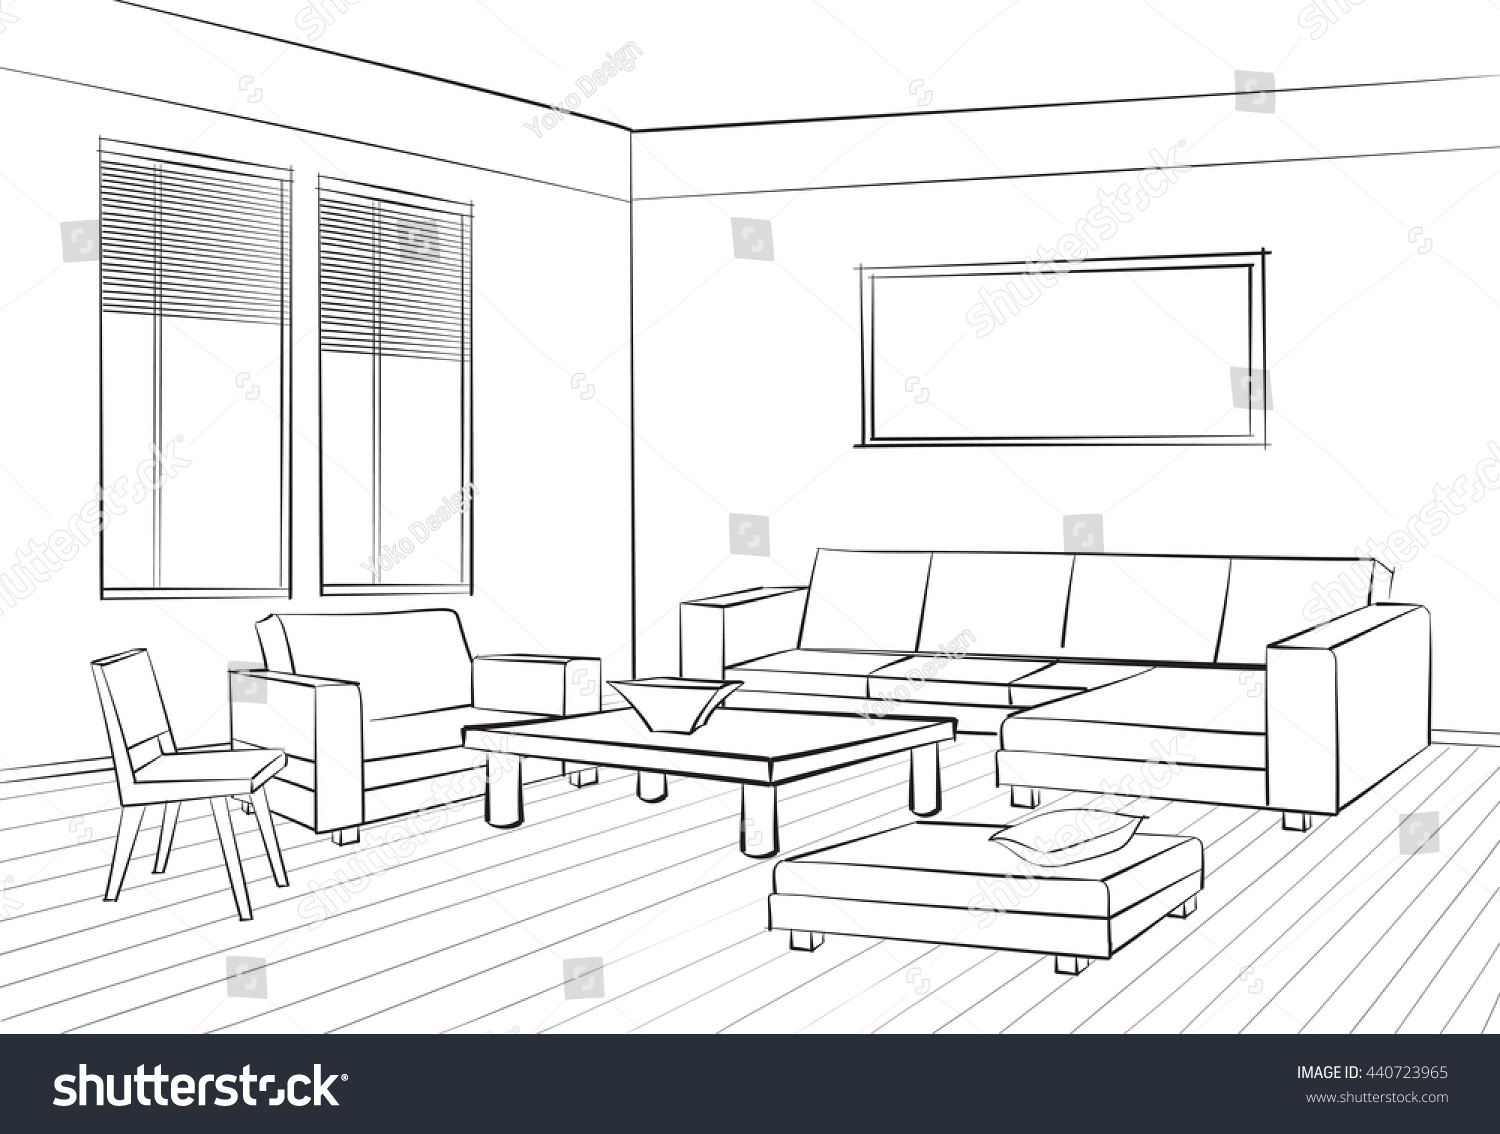 Home interior furniture sofa armchair table stock vector for Drawing room interior design photos